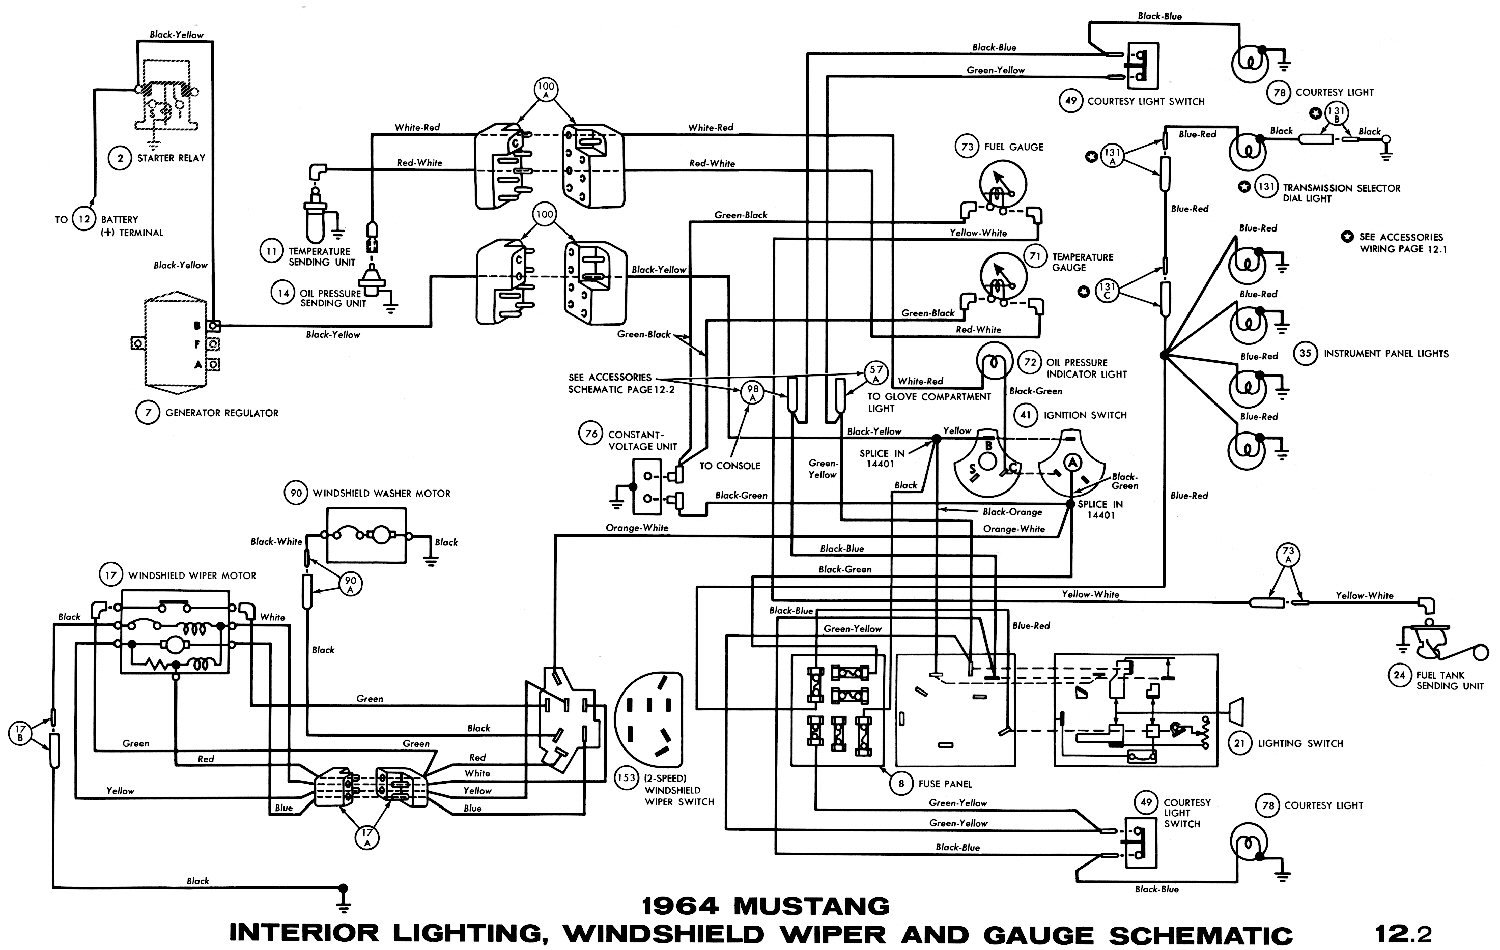 1970 Mustang Wiring Diagram Free Guide And Troubleshooting Of 1965 F100 Harness Get Image About 1969 Radio Todays Rh 5 12 1813weddingbarn Com Ford